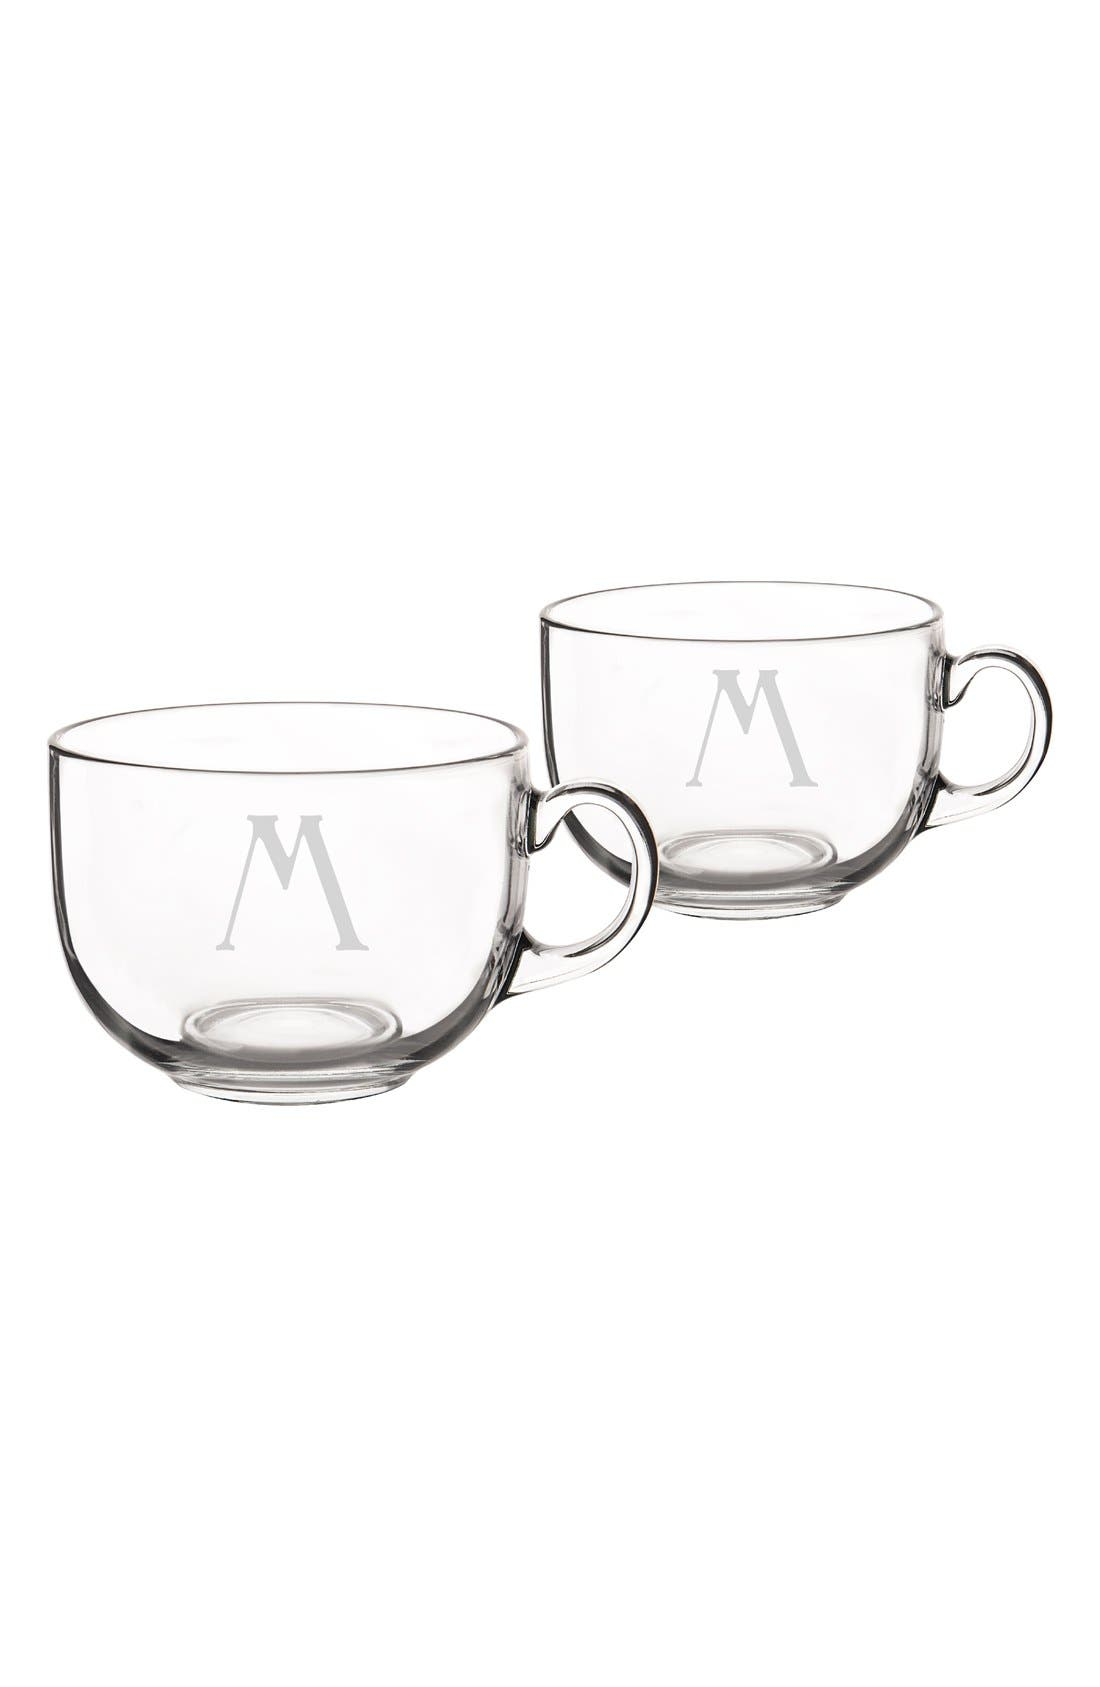 CATHY'S CONCEPTS Monogram Glass Coffee Mugs